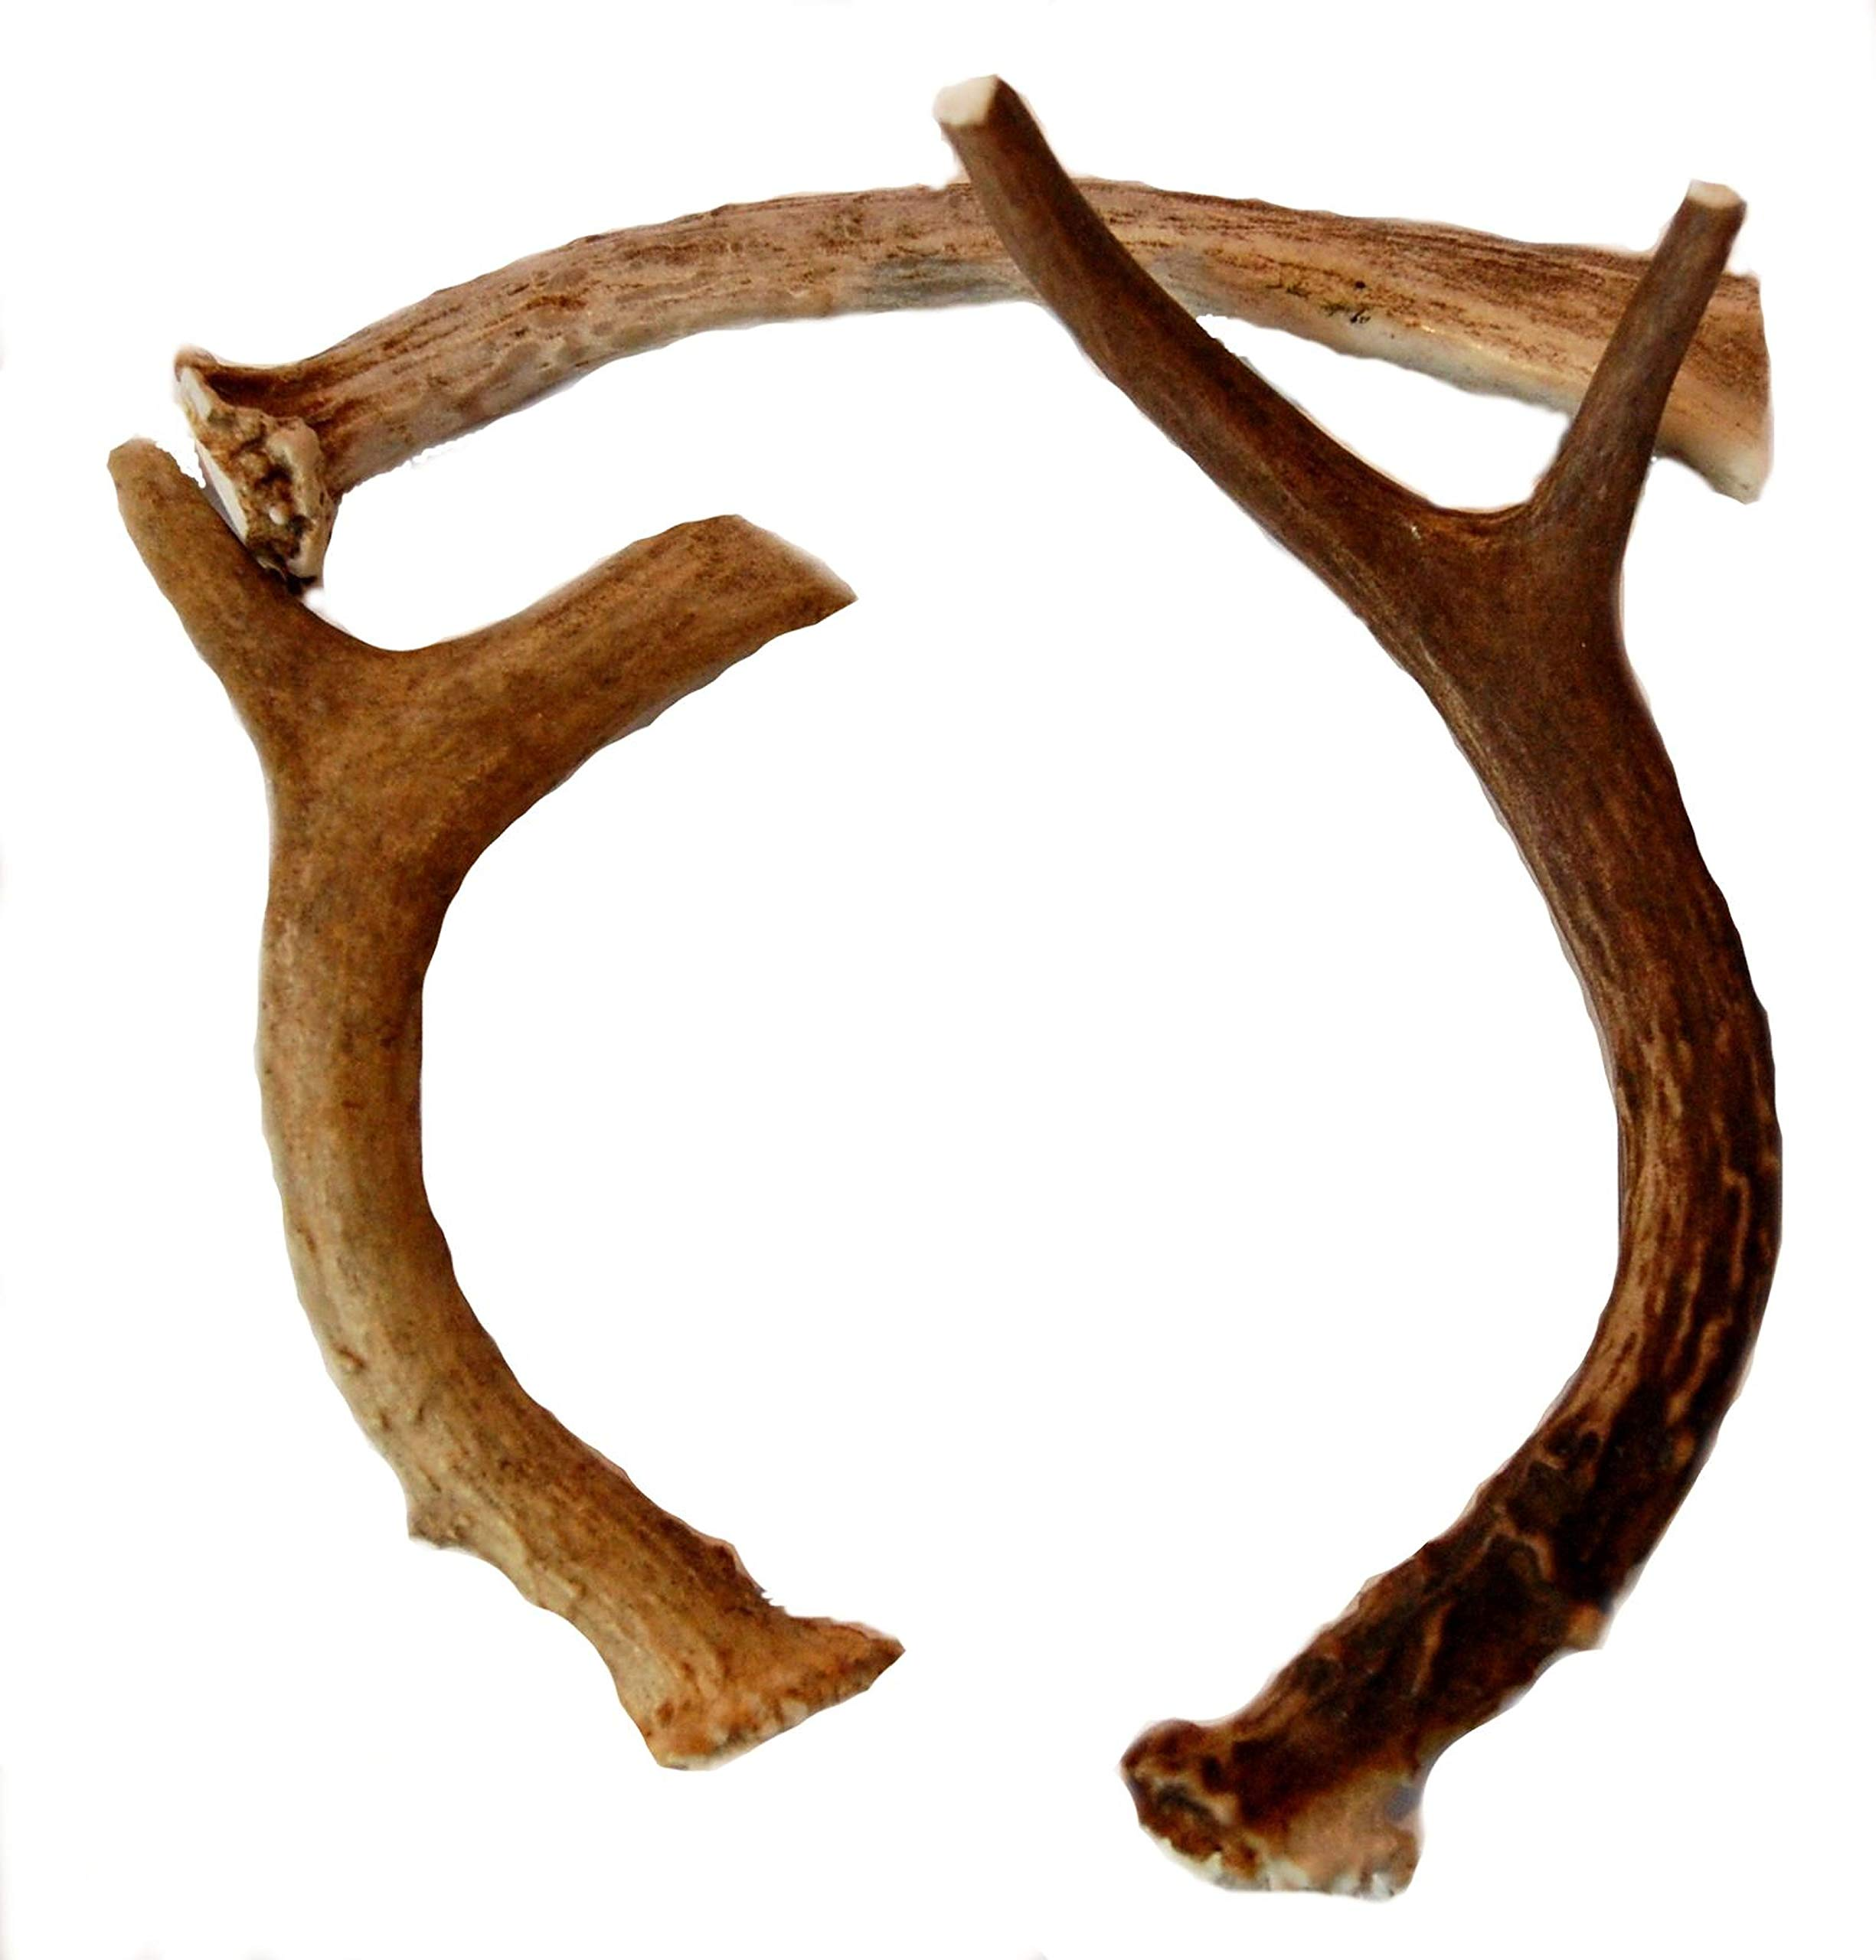 Big Dog Antler Chews 3 Pack Medium Deer Antler Dog Chews - 5 Inches to 10 Inches - for Small to Medium Size Dogs Brand by Big Dog Antler Chews